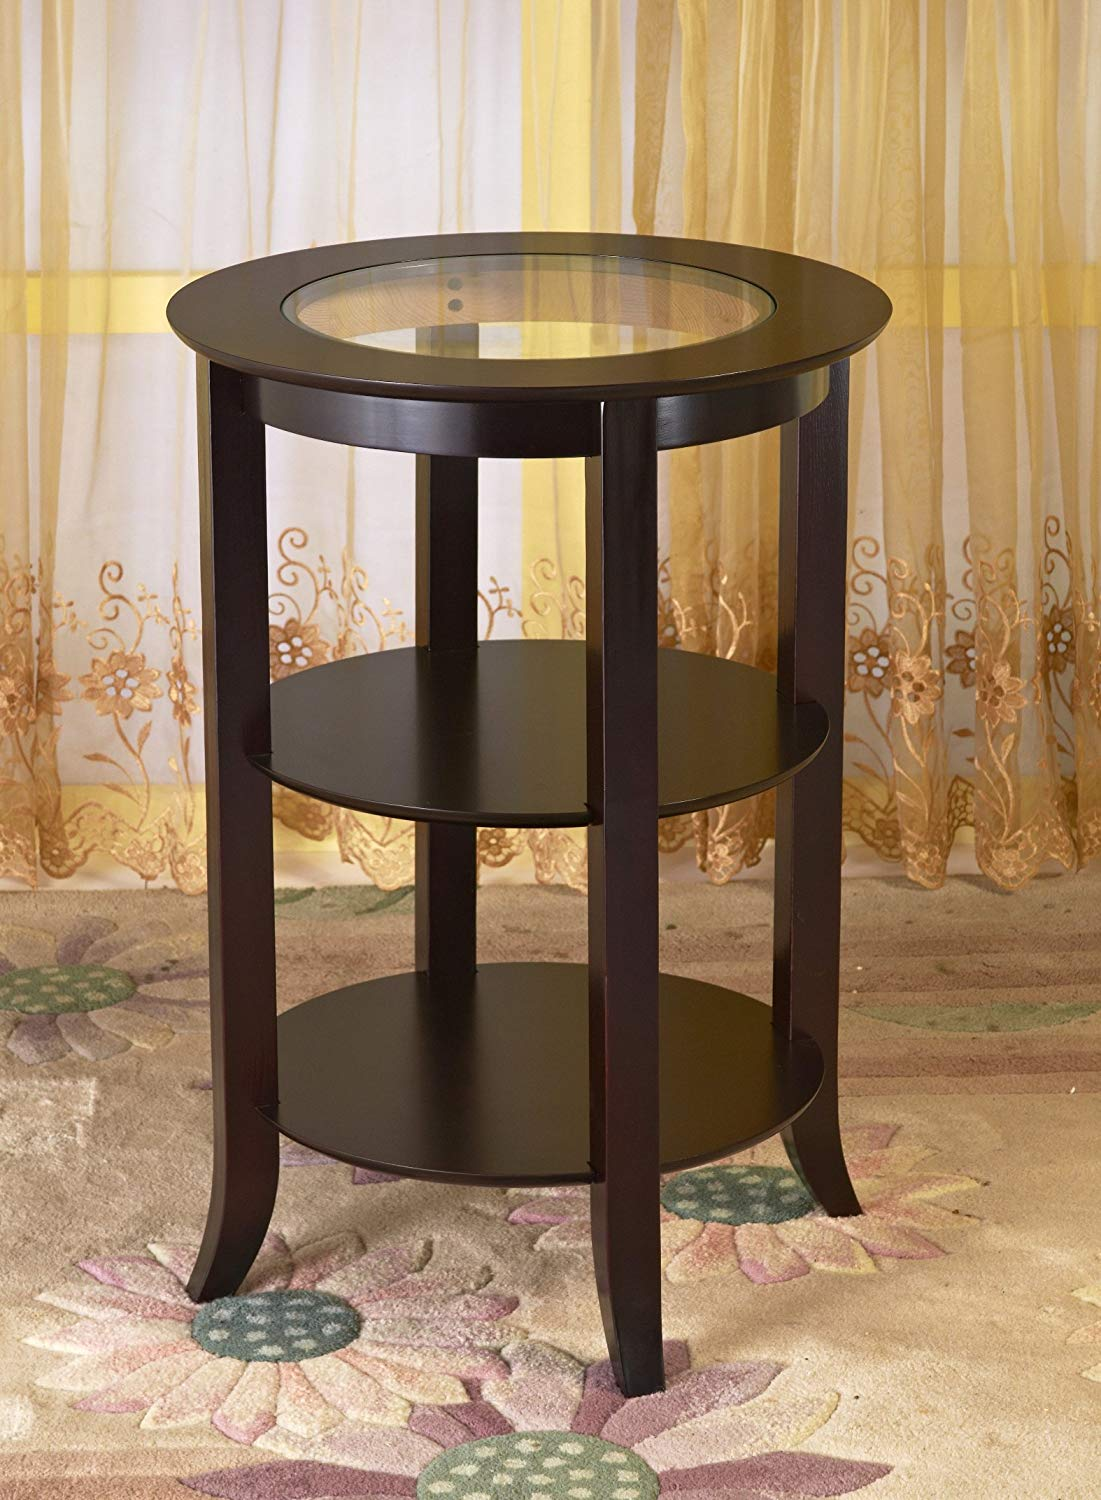 frenchi furniture wood round side accent table inset winsome cassie with glass top cappuccino finish two shelves kitchen dining end tables for small rooms couch covers shoe